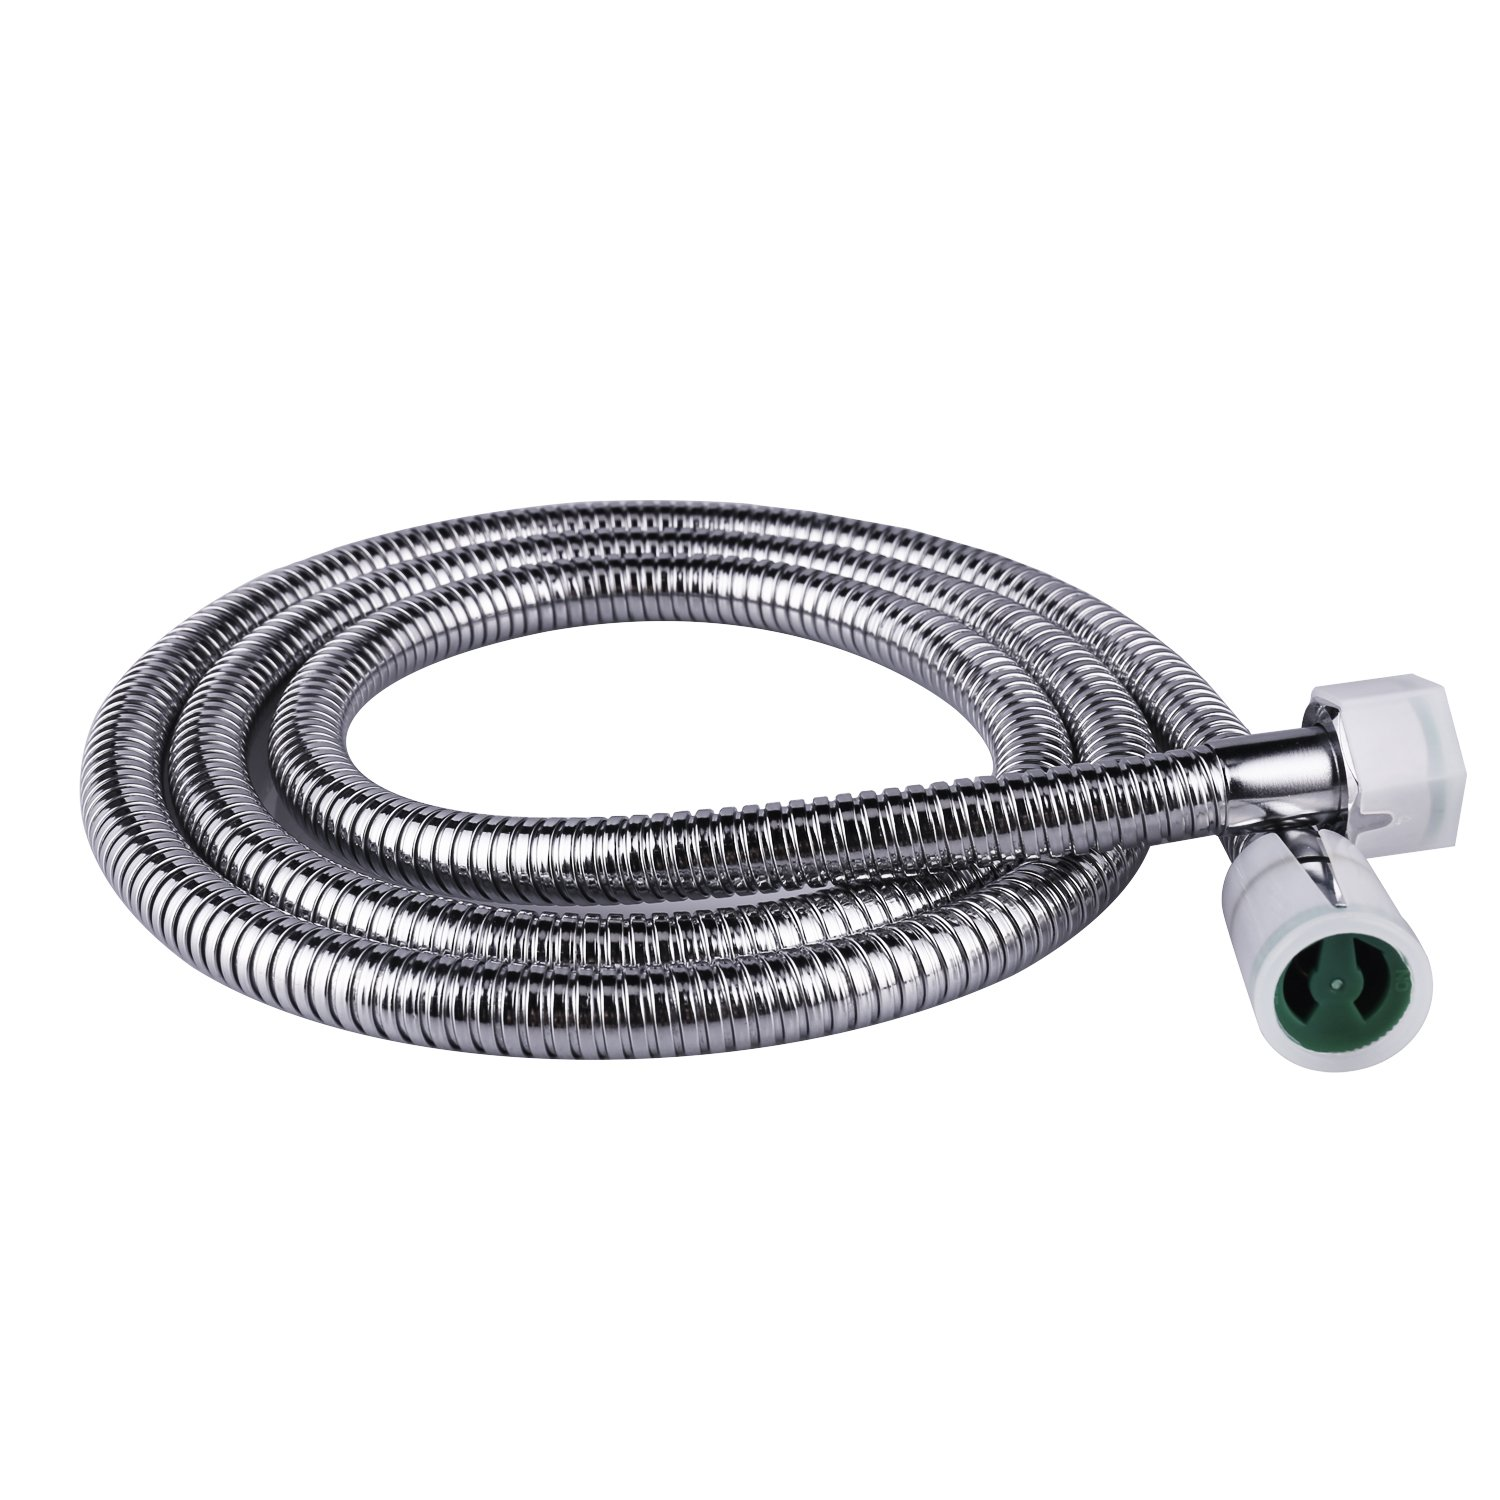 Flexible Shower Hose for HandHeld Showerhead 1.6m Stainless Steel Shower Head Hose Standar G1/2 Swivel Connector Shower Tube/Shower Pipe,Polished Chrome